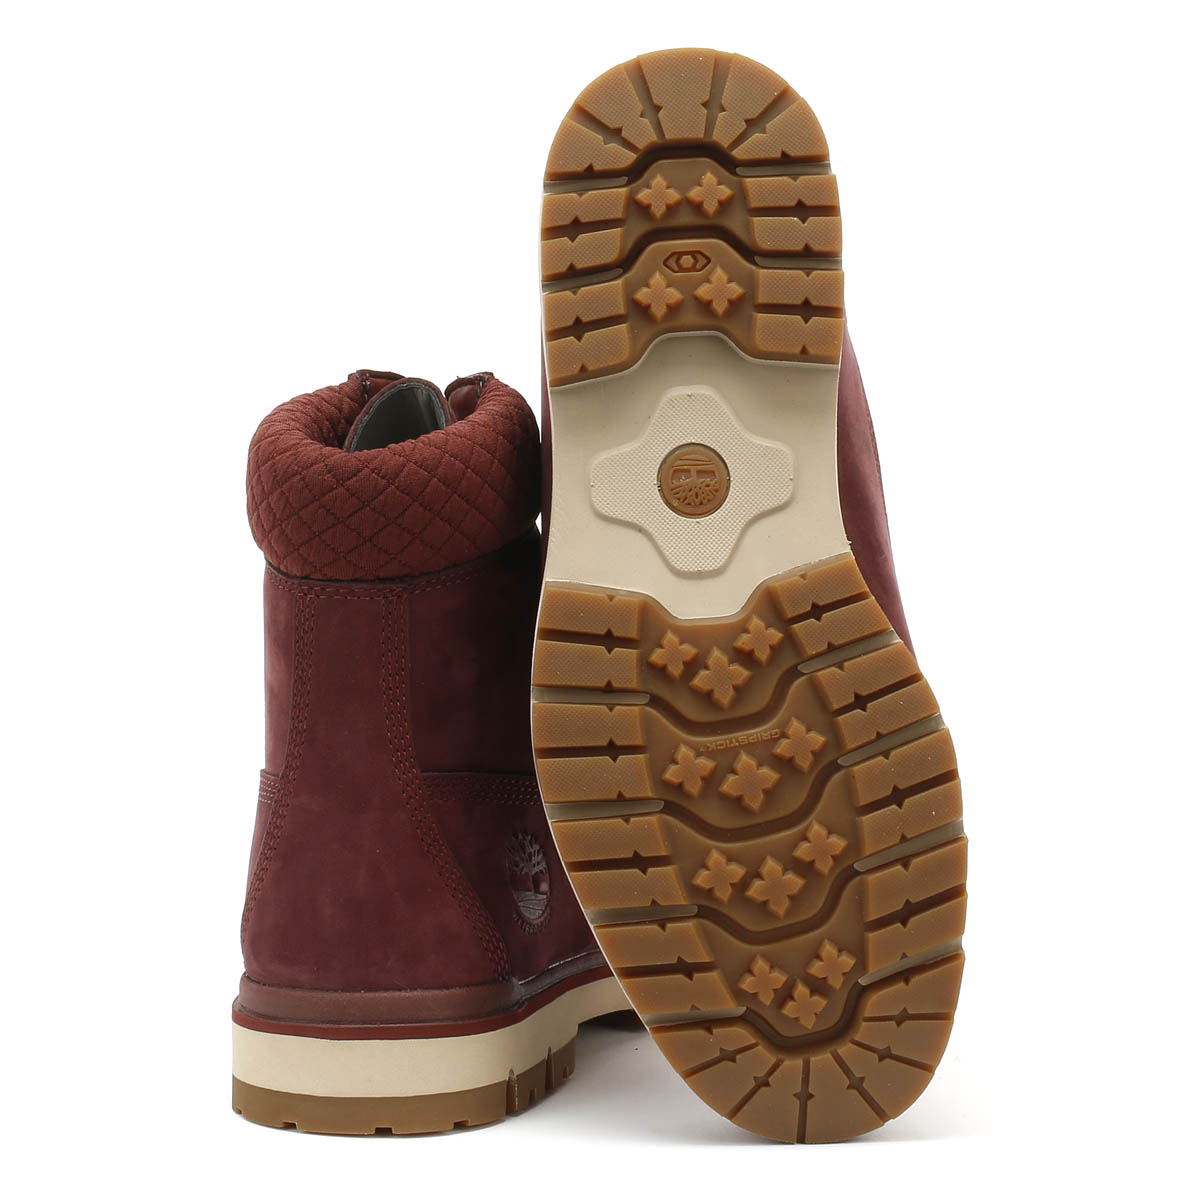 Details about Timberland Mens Boots Burgundy Radford 6 Inch D Rings Warm Winter Leather Shoes